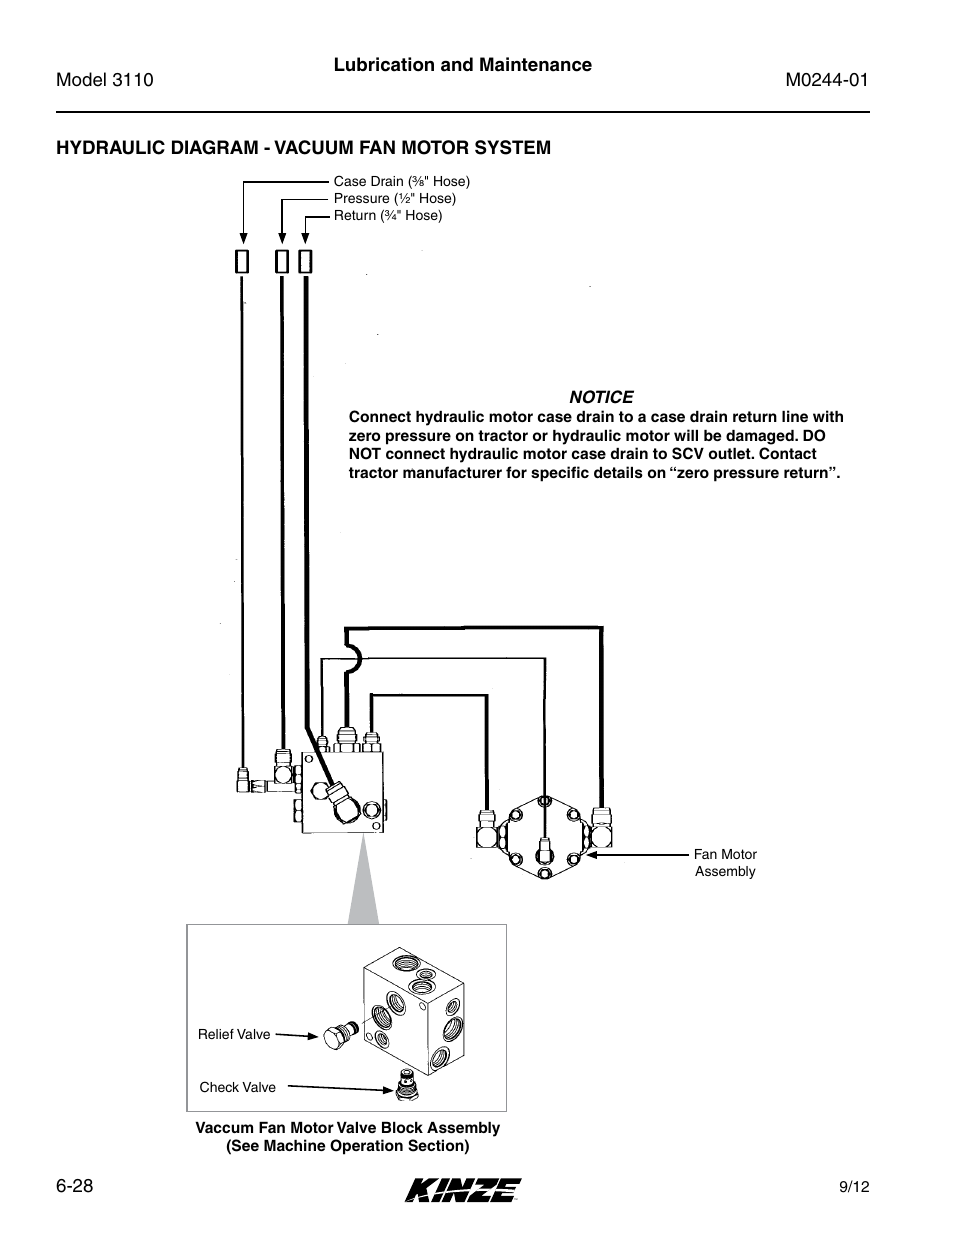 Hydraulic diagram - vacuum fan motor system, Hydraulic